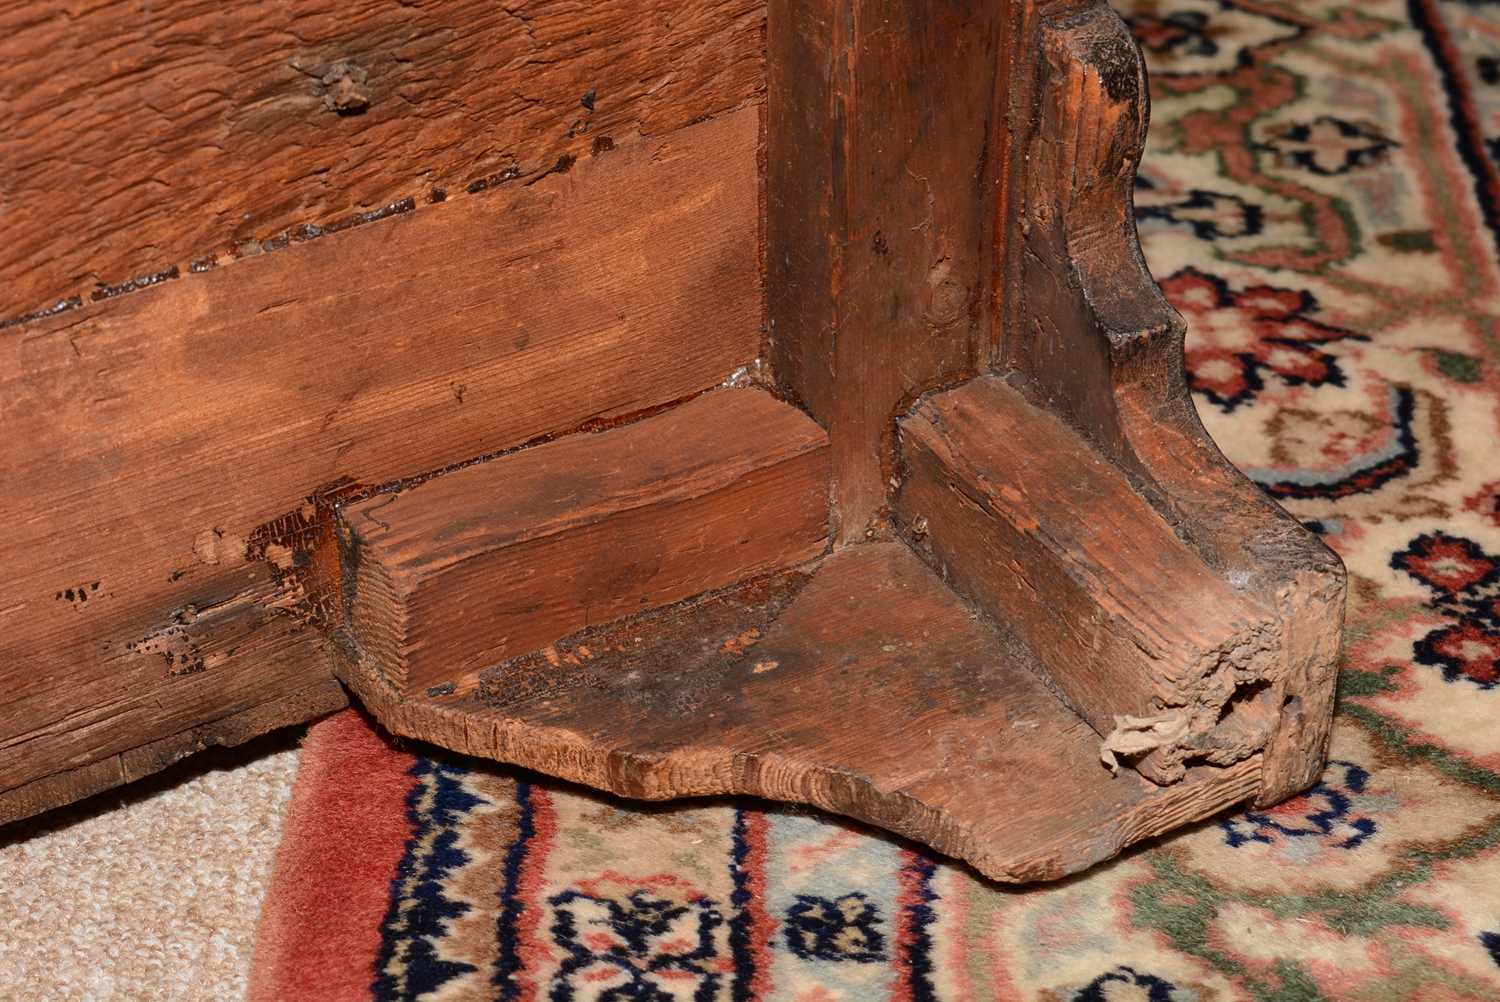 Early 18th Century walnut bachelors chest - Image 21 of 39